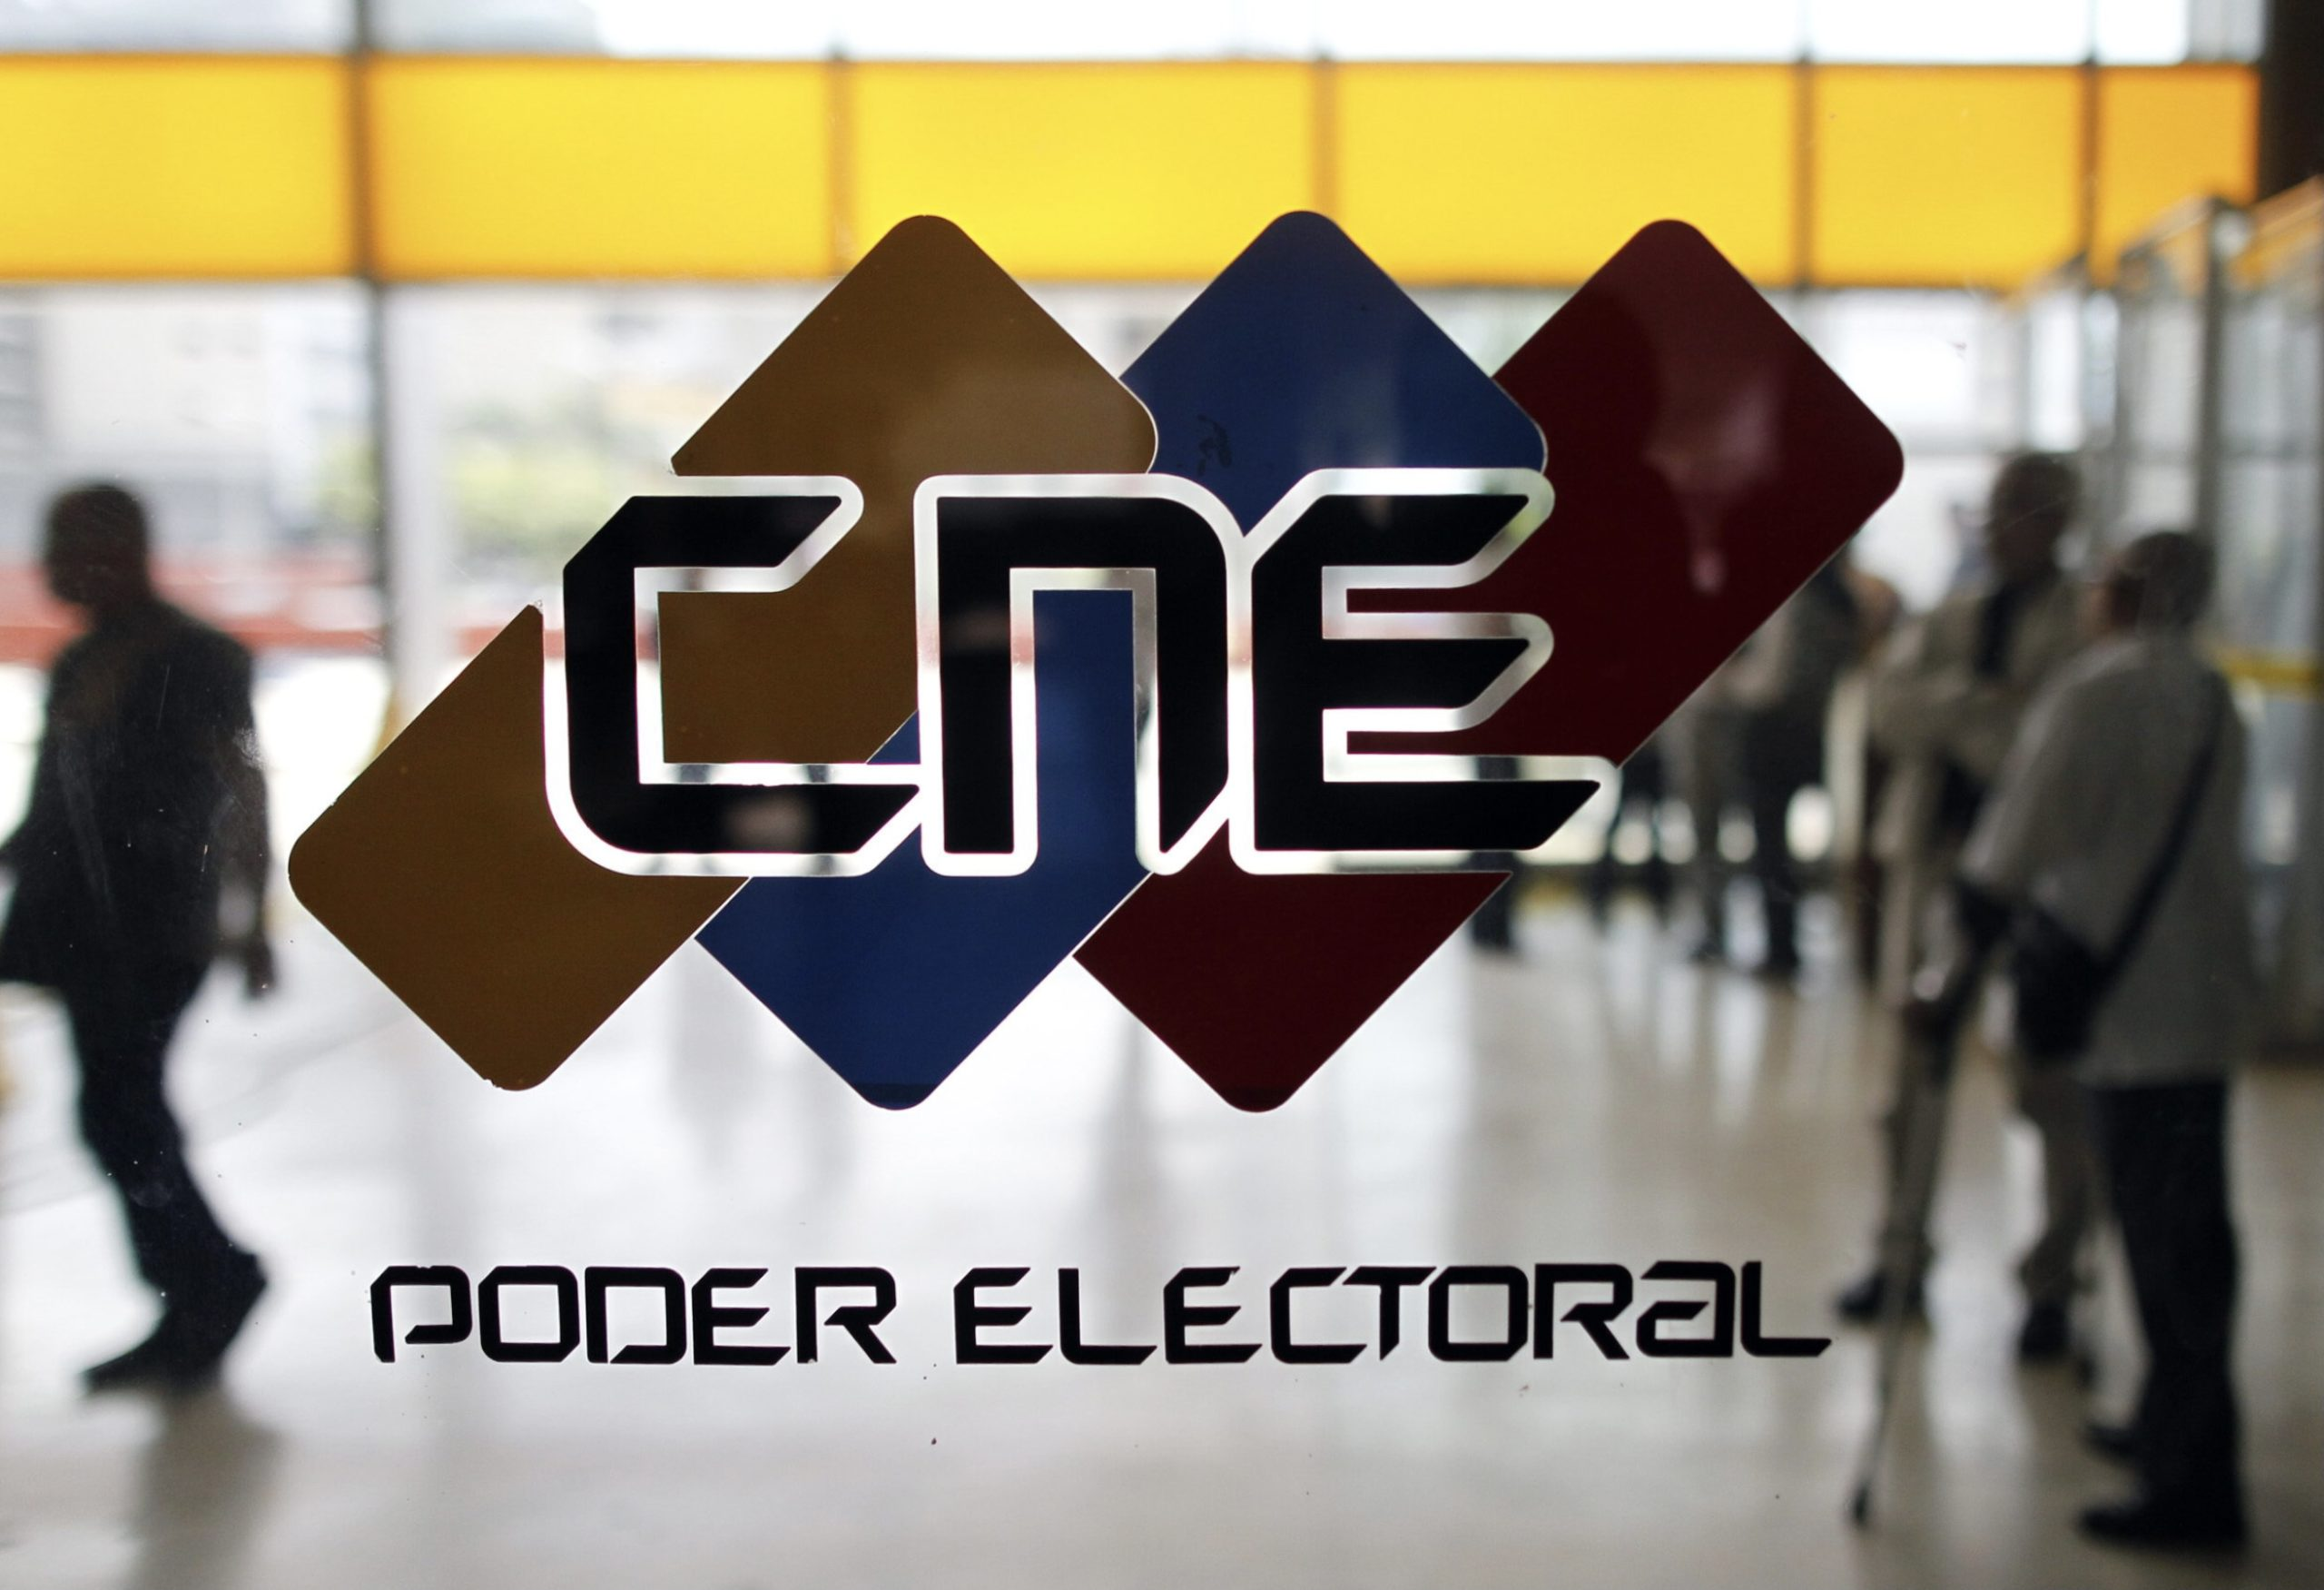 Venezuela Has a New Electoral Board. Don't Get Too Excited | Caracas Chronicles